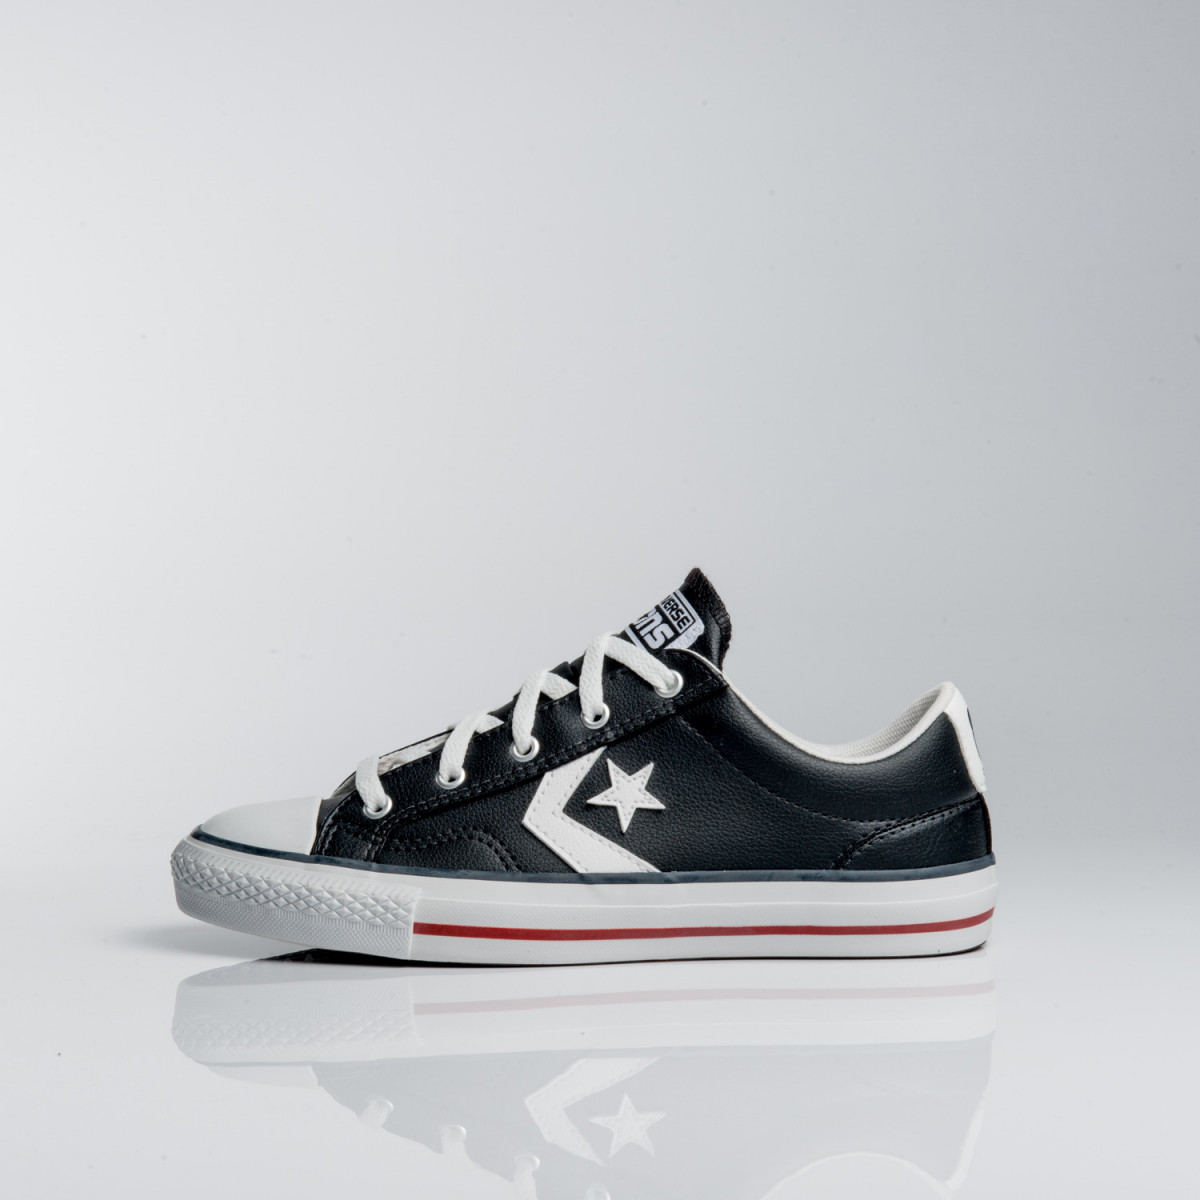 ZAPATILLAS CONVERSE STAR PLAYER SL OX